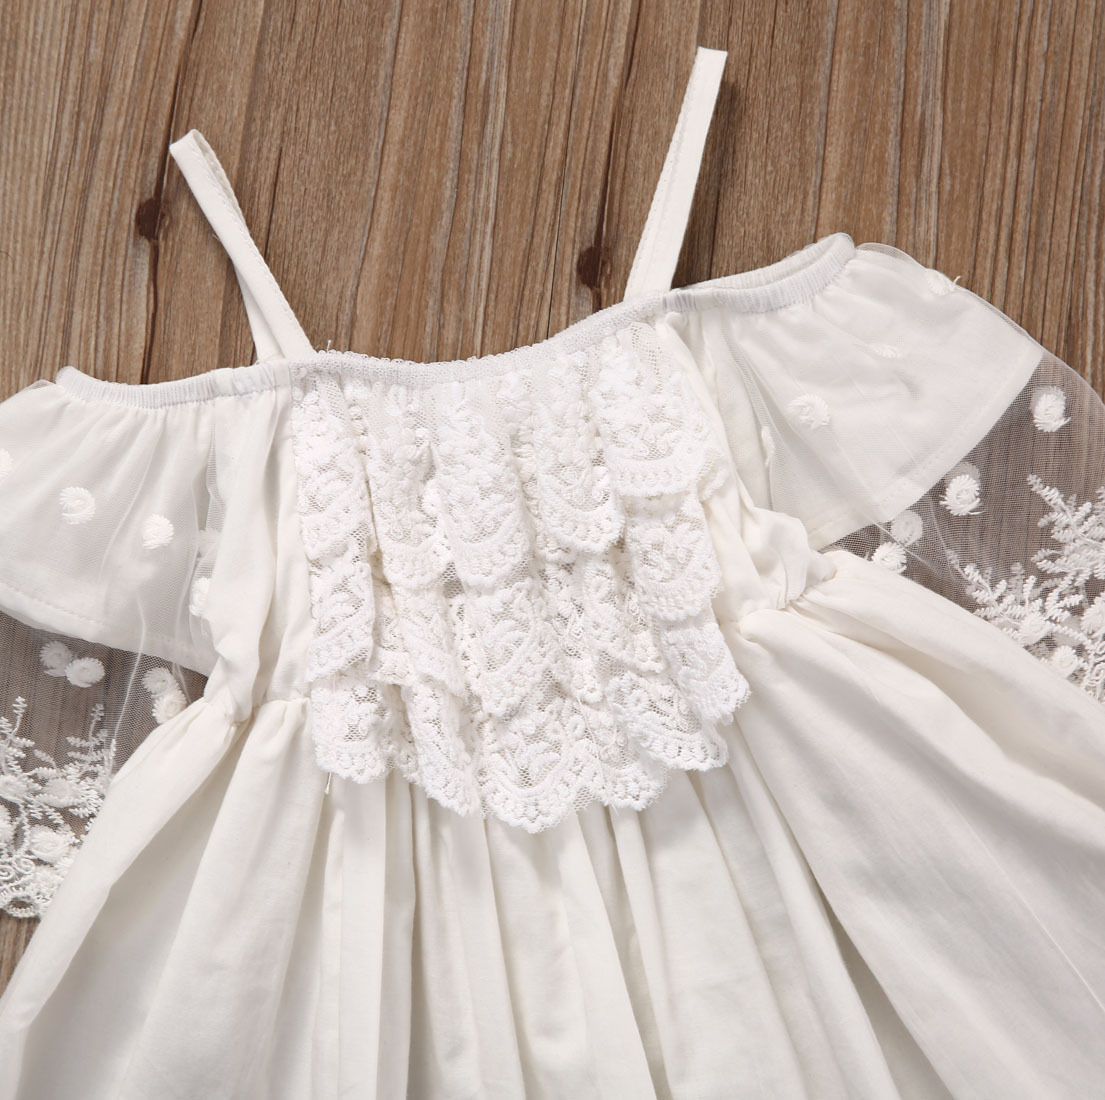 Lace-Girl-Clothing-Princess-Dress-Kid-Baby-Party-Wedding-Pageant-Formal-Mini-Cute-White-Dresses-Clothes-Baby-Girls-3